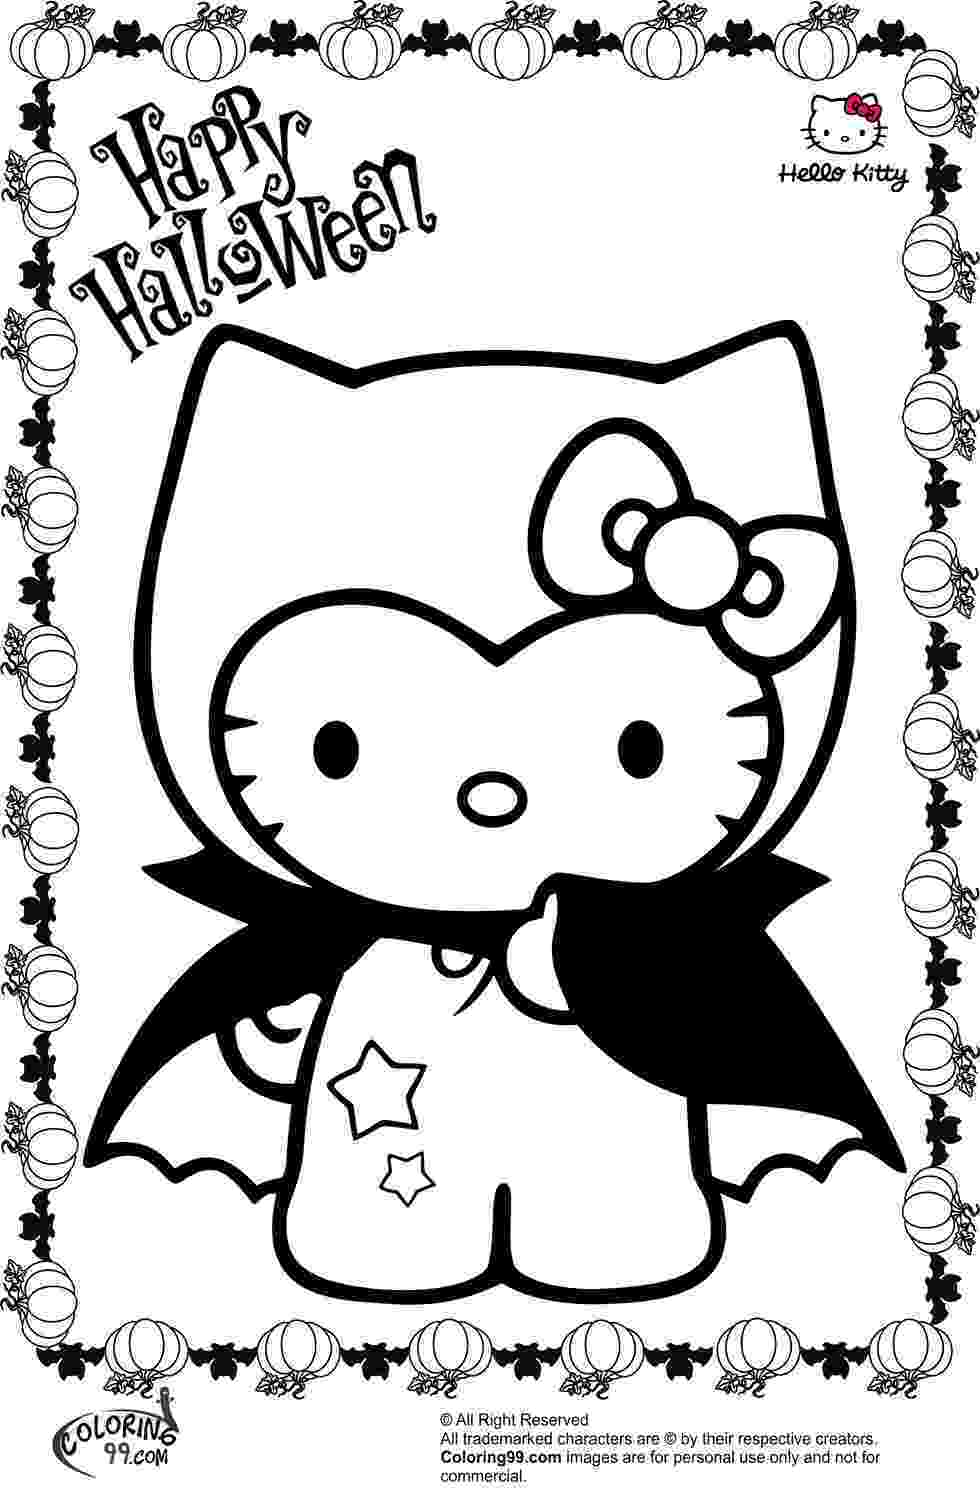 printable coloring pages hello kitty free printable hello kitty coloring pages for pages hello kitty coloring printable pages